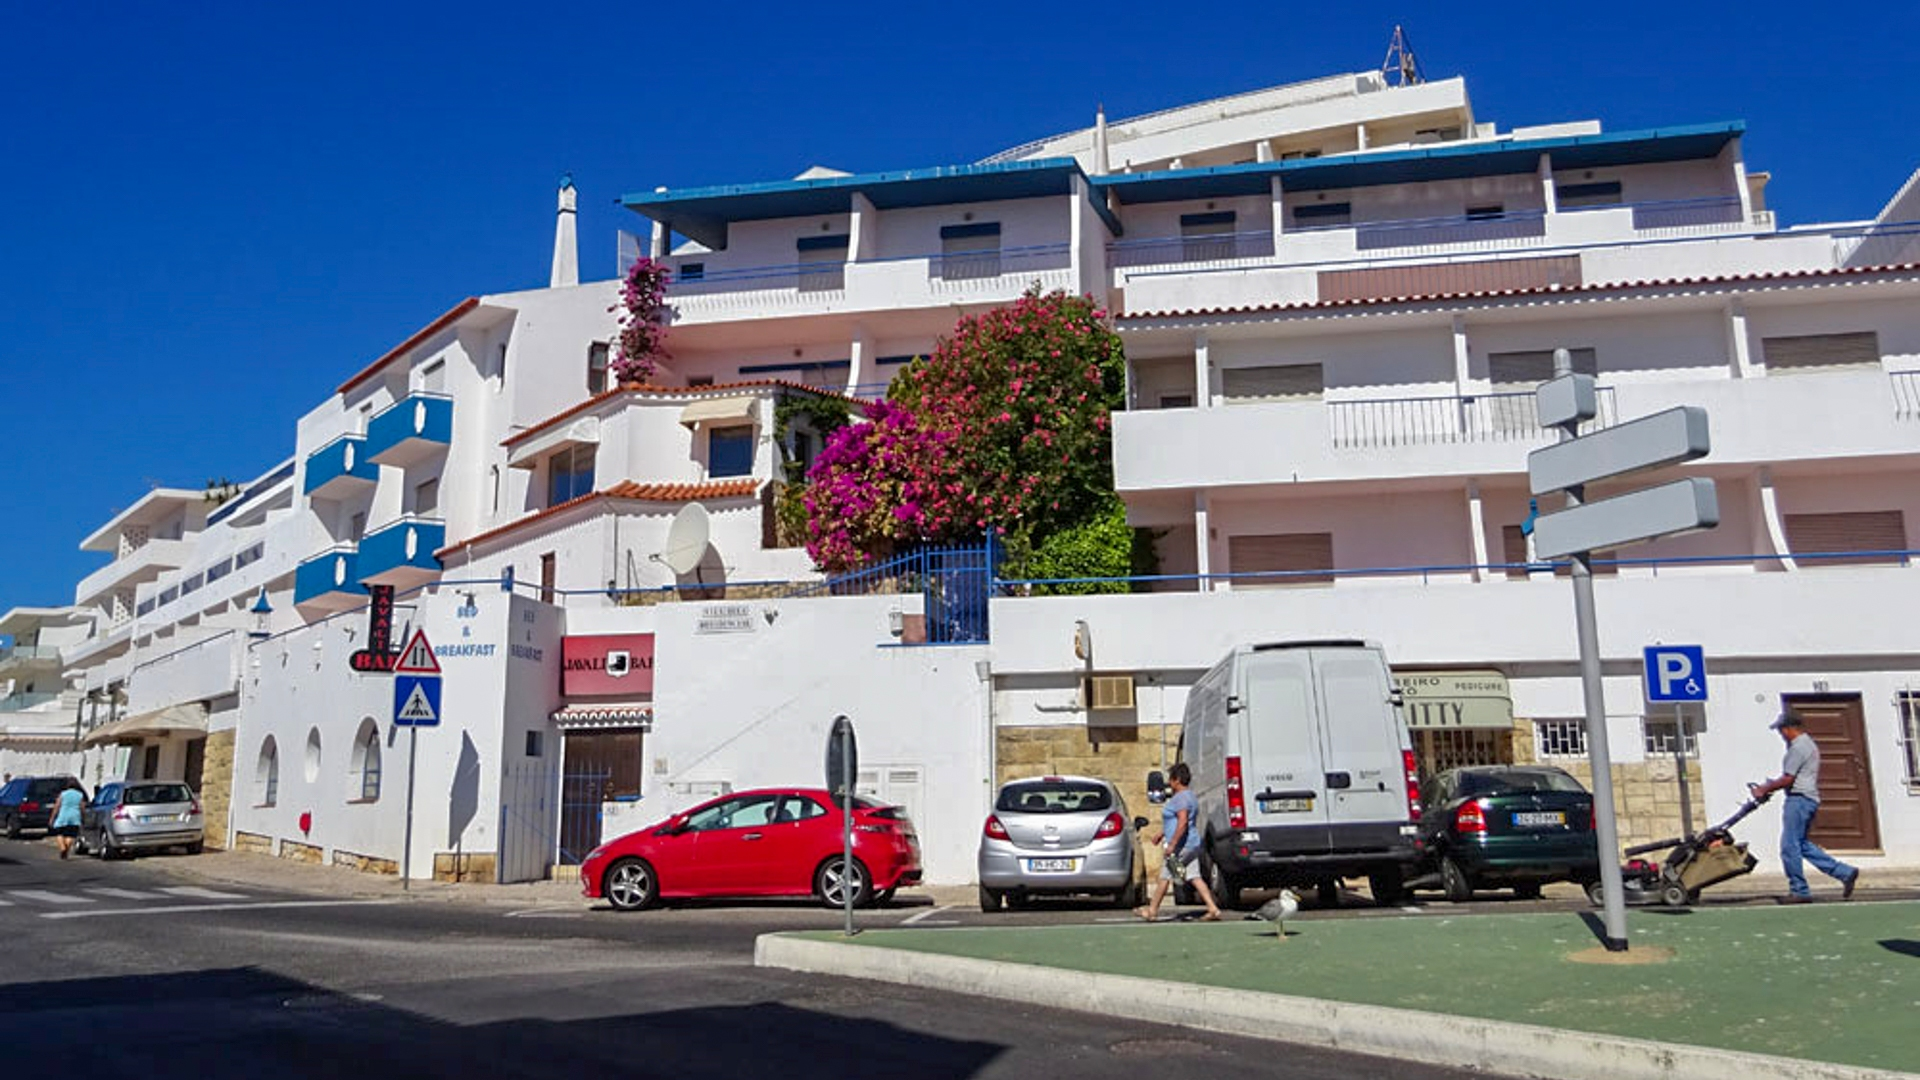 Business opportunity: Family Boutique Hotel near Beach with Sea views, Albufeira | PMR262 Bed & Breakfast with a good reputation ran by the same family for many years, overlooking Albufeira Bay and located within walking distance to beaches, shops, bars and restaurants.